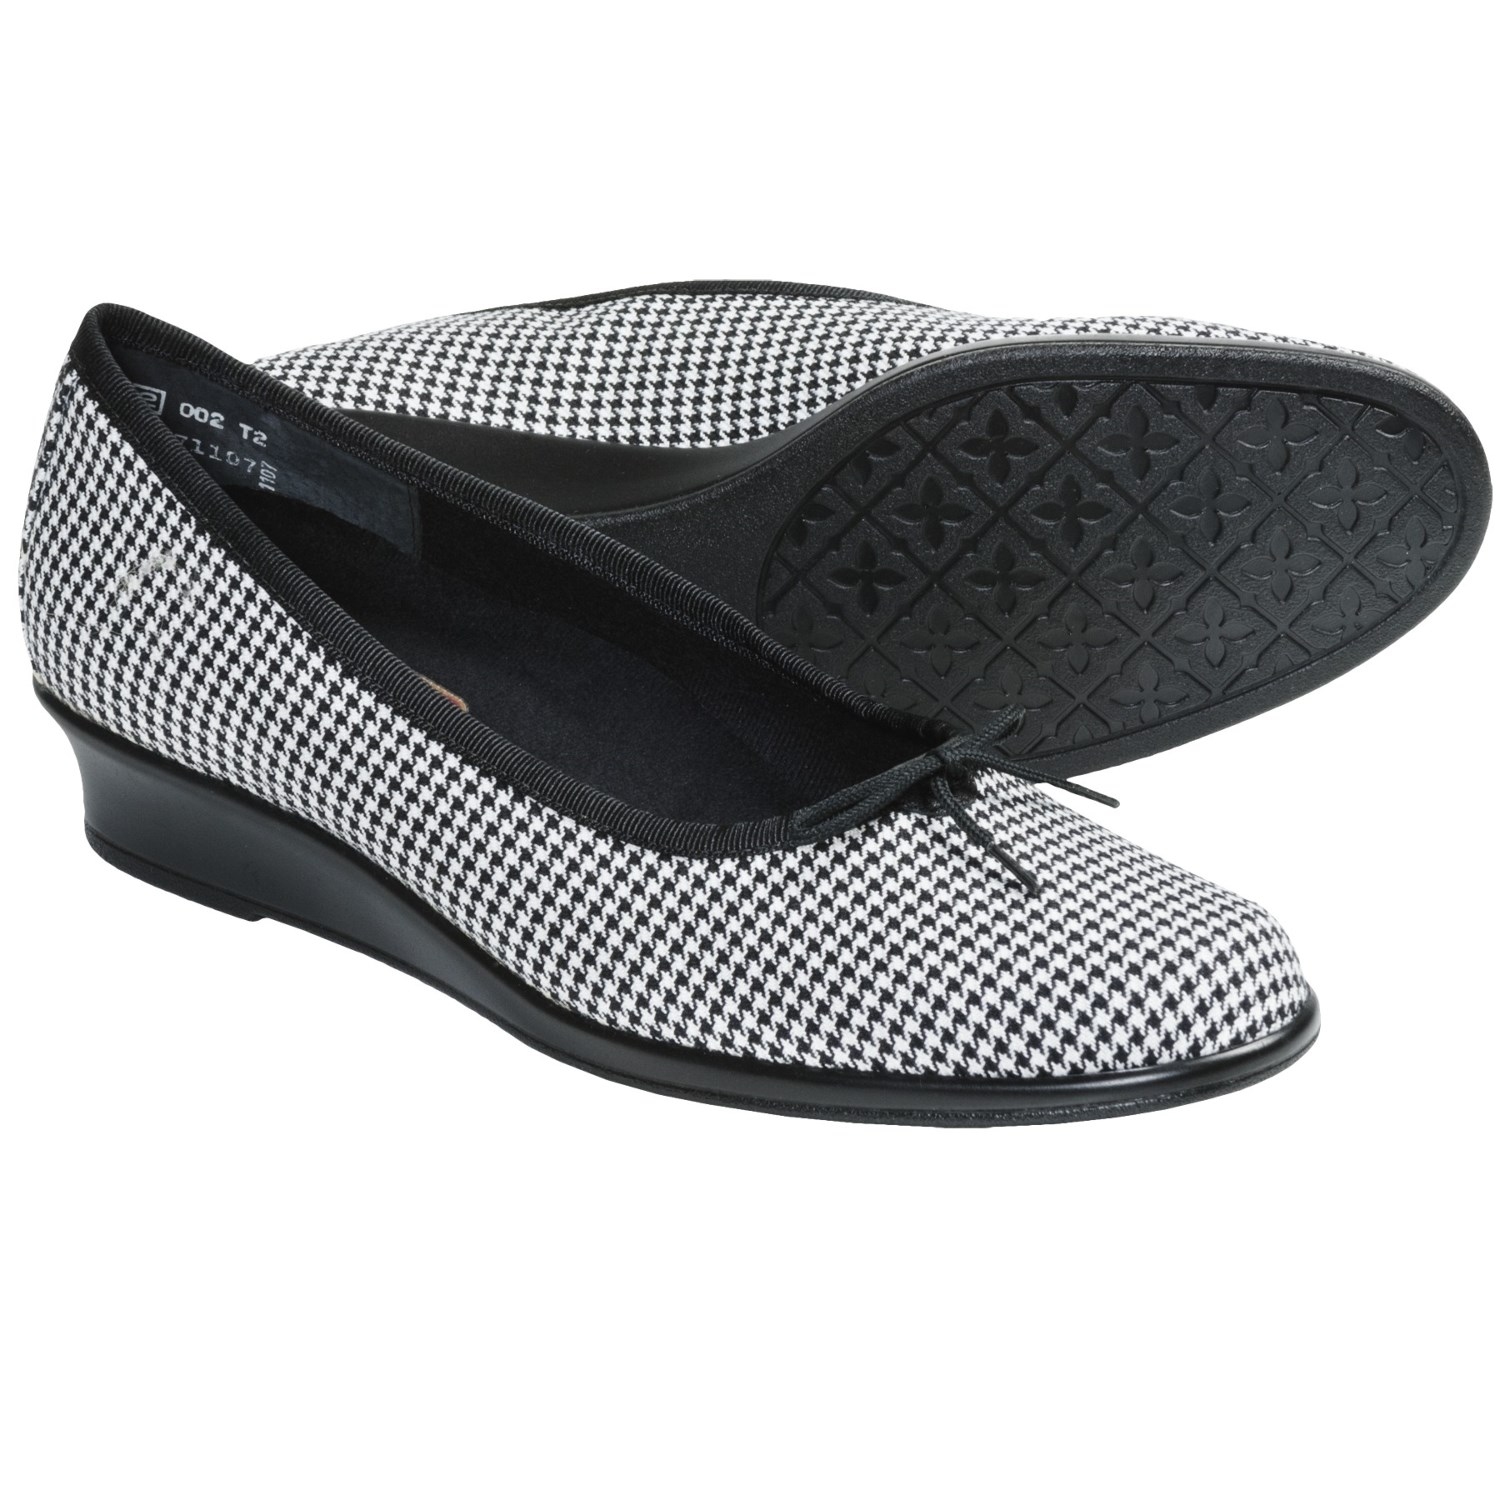 Munro American Sydney Shoes - Wedge Heel (For Women) in Black/White